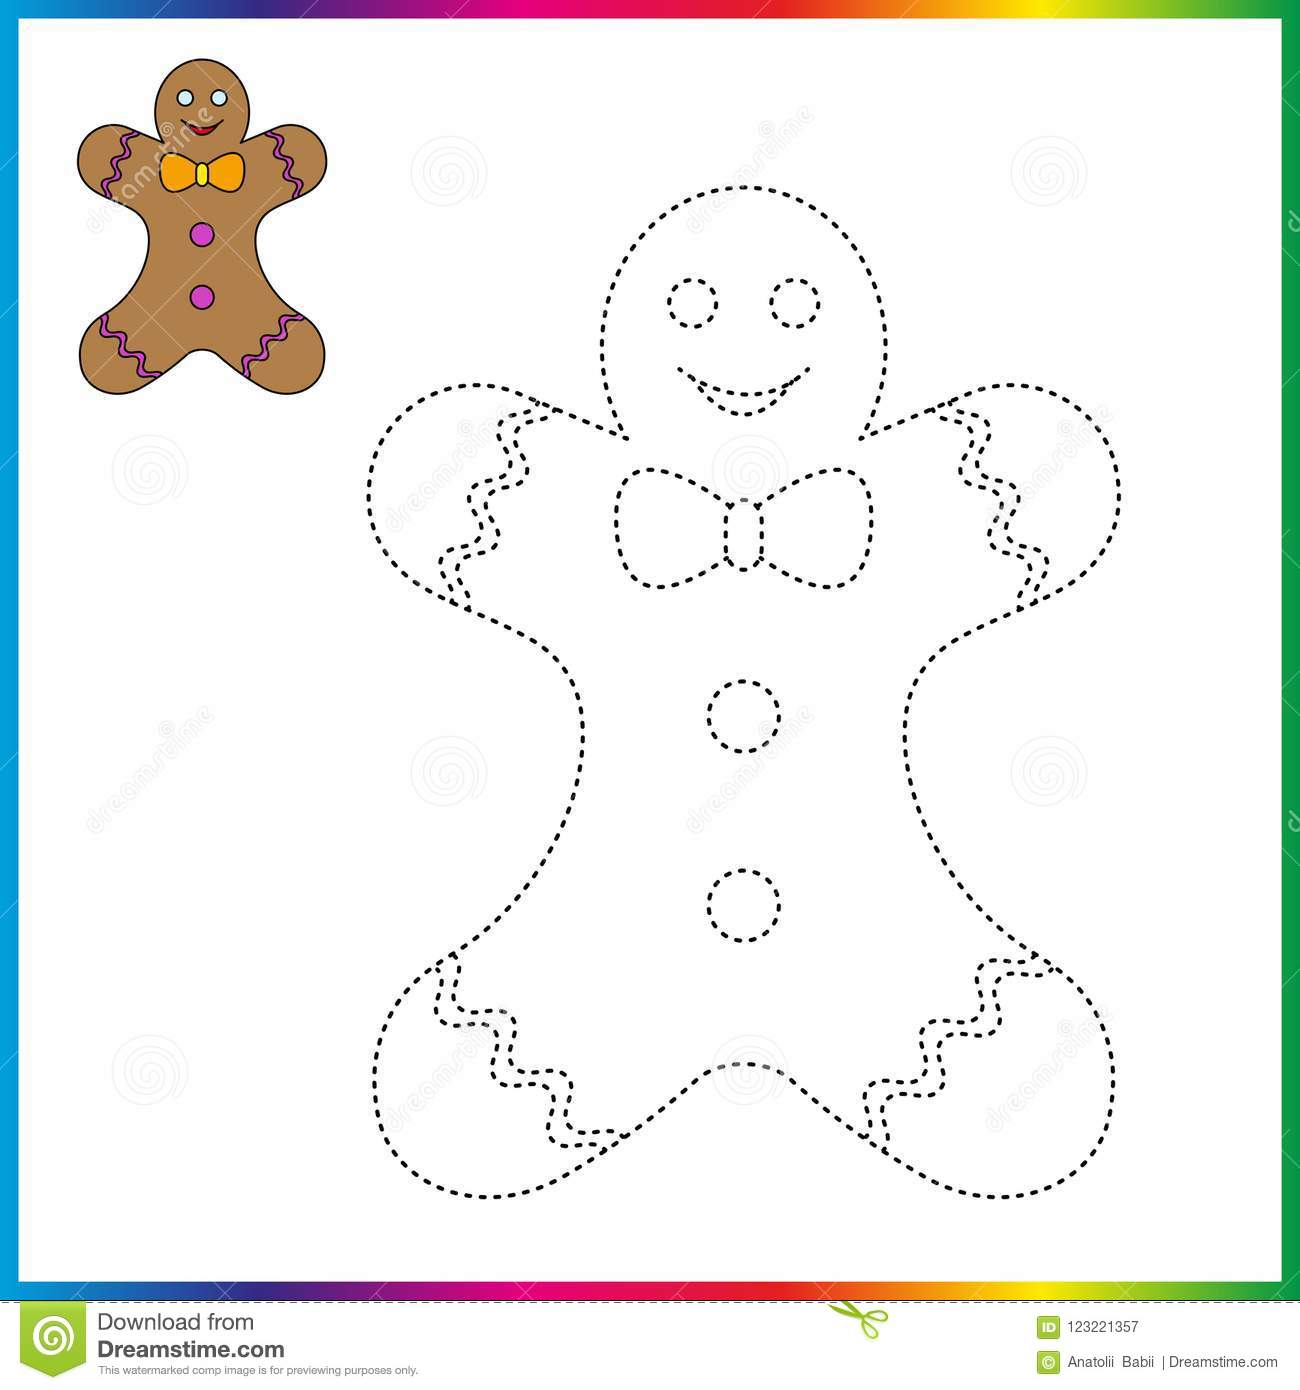 Connect The Dots And Coloring Page Worksheet